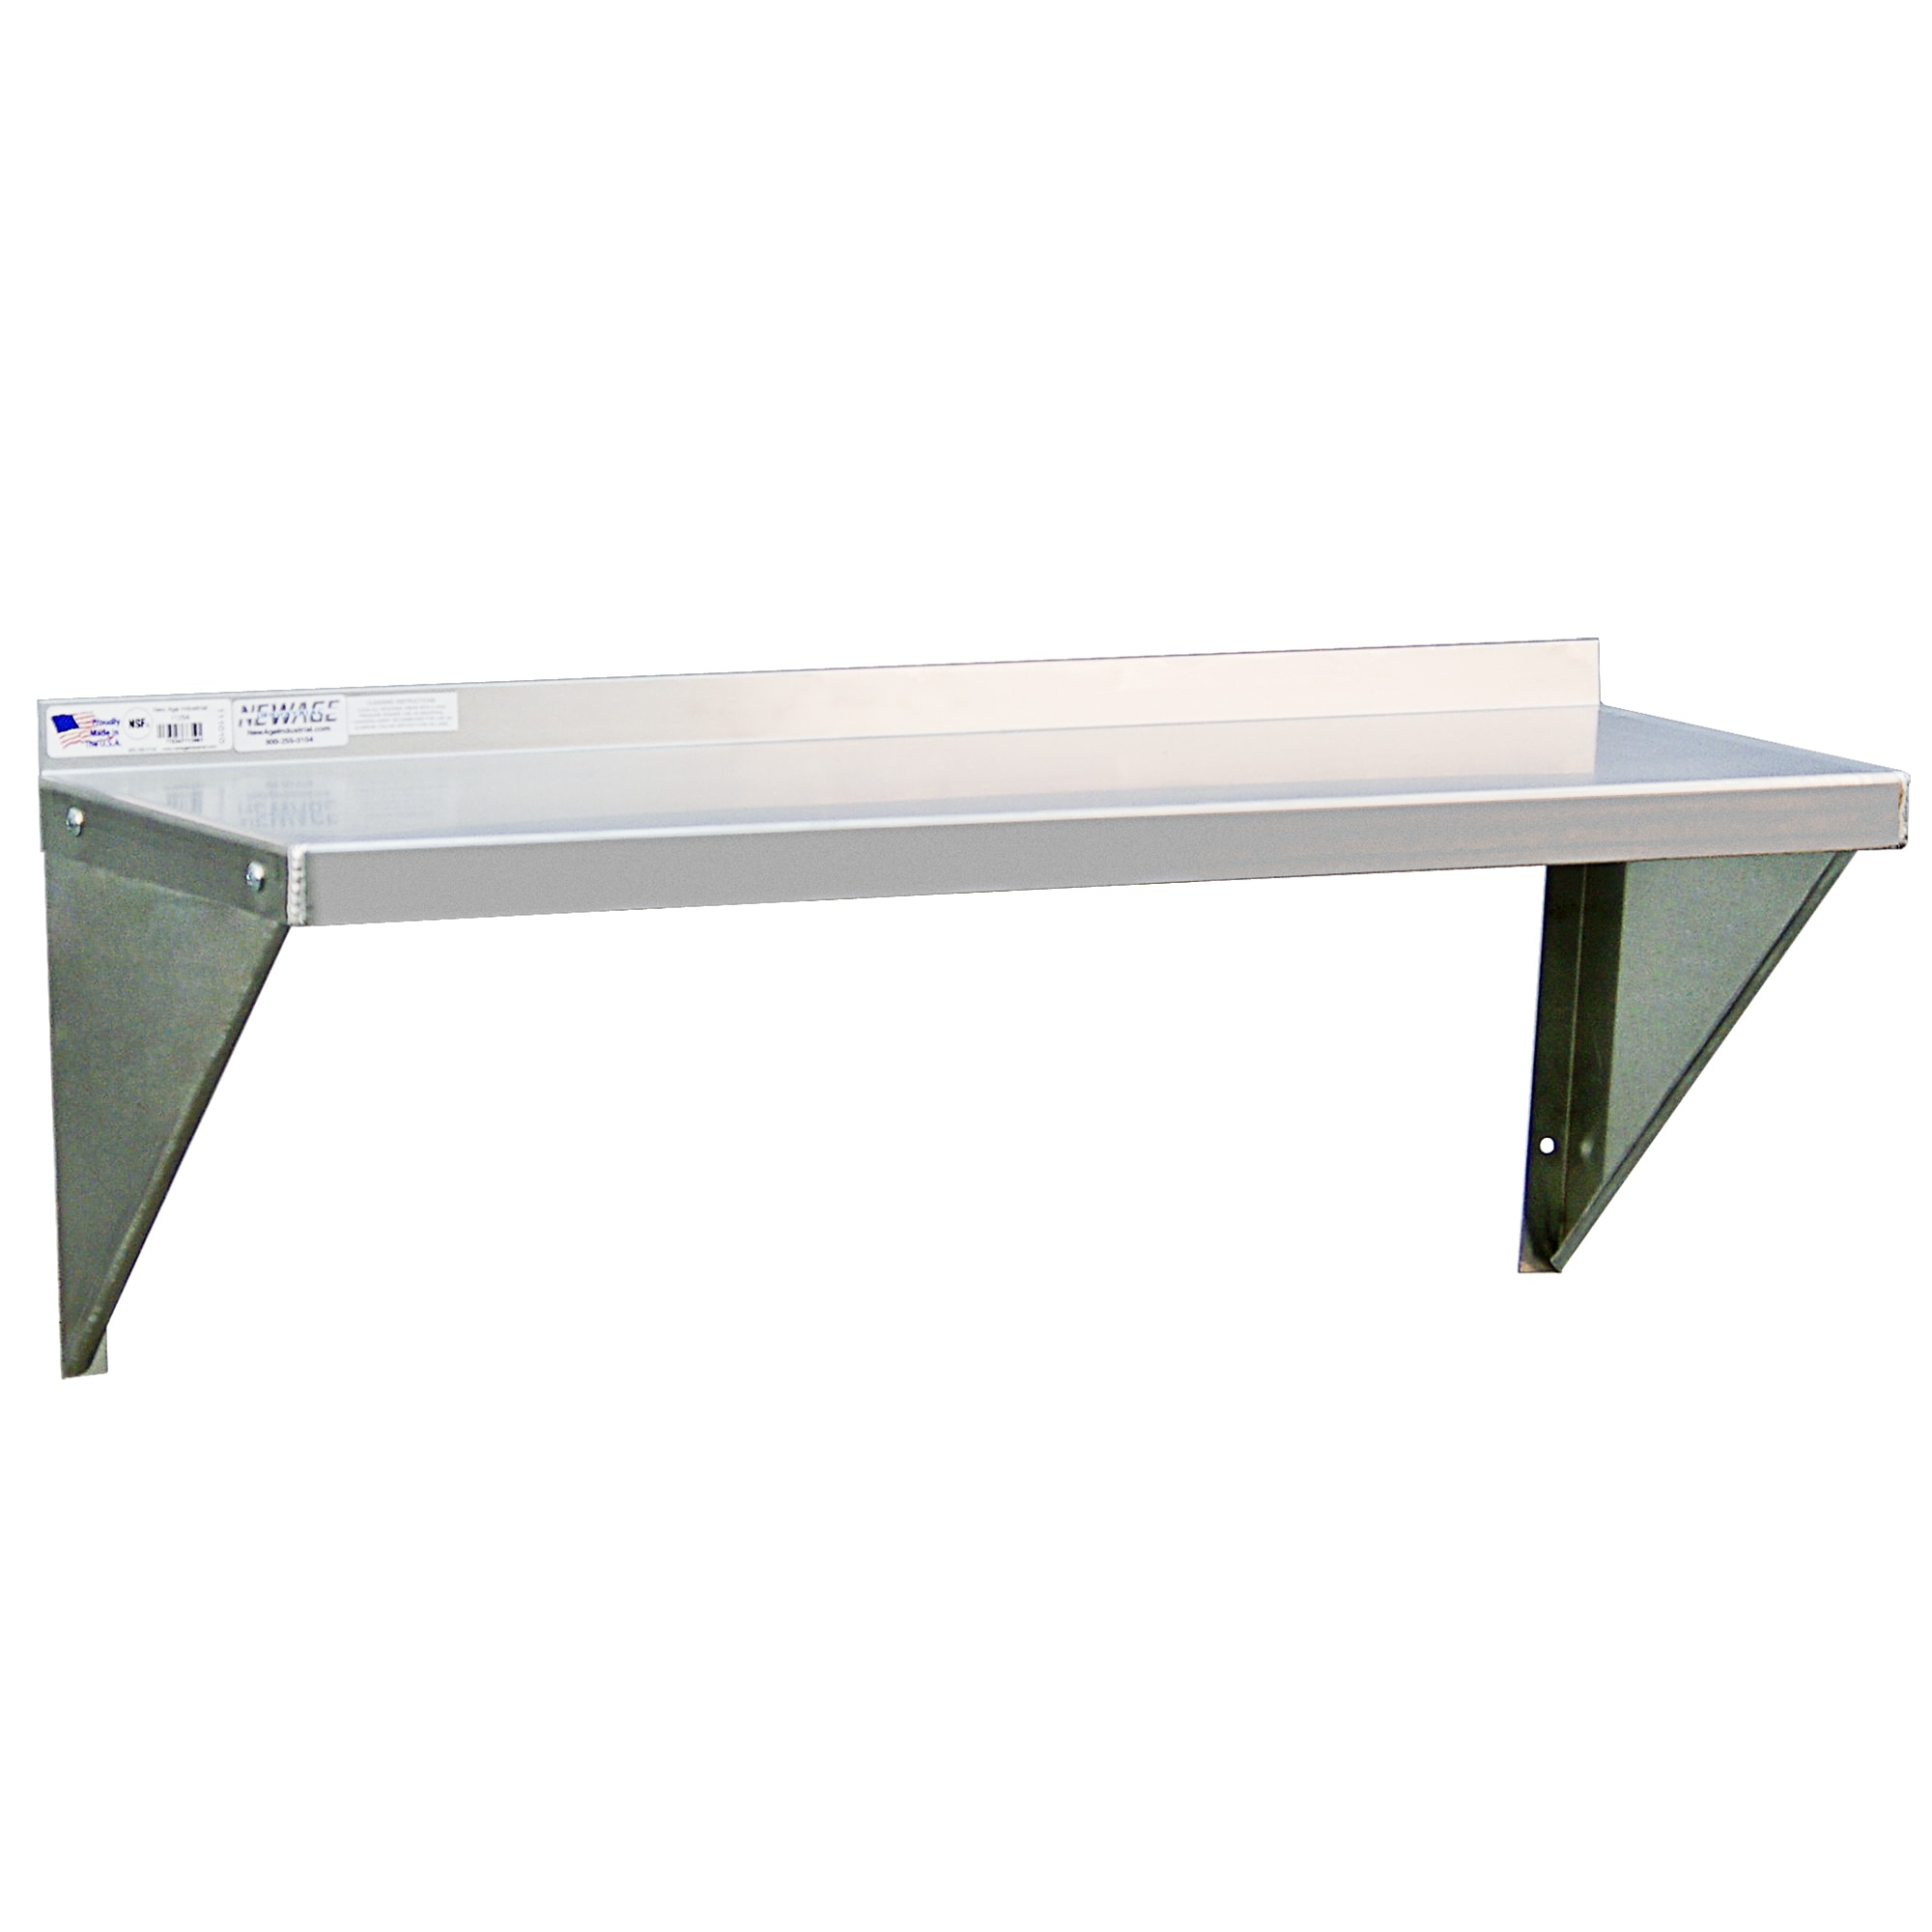 "New Age 1125 Solid Wall Mounted Shelf, 36""W x 12""D, Aluminum"